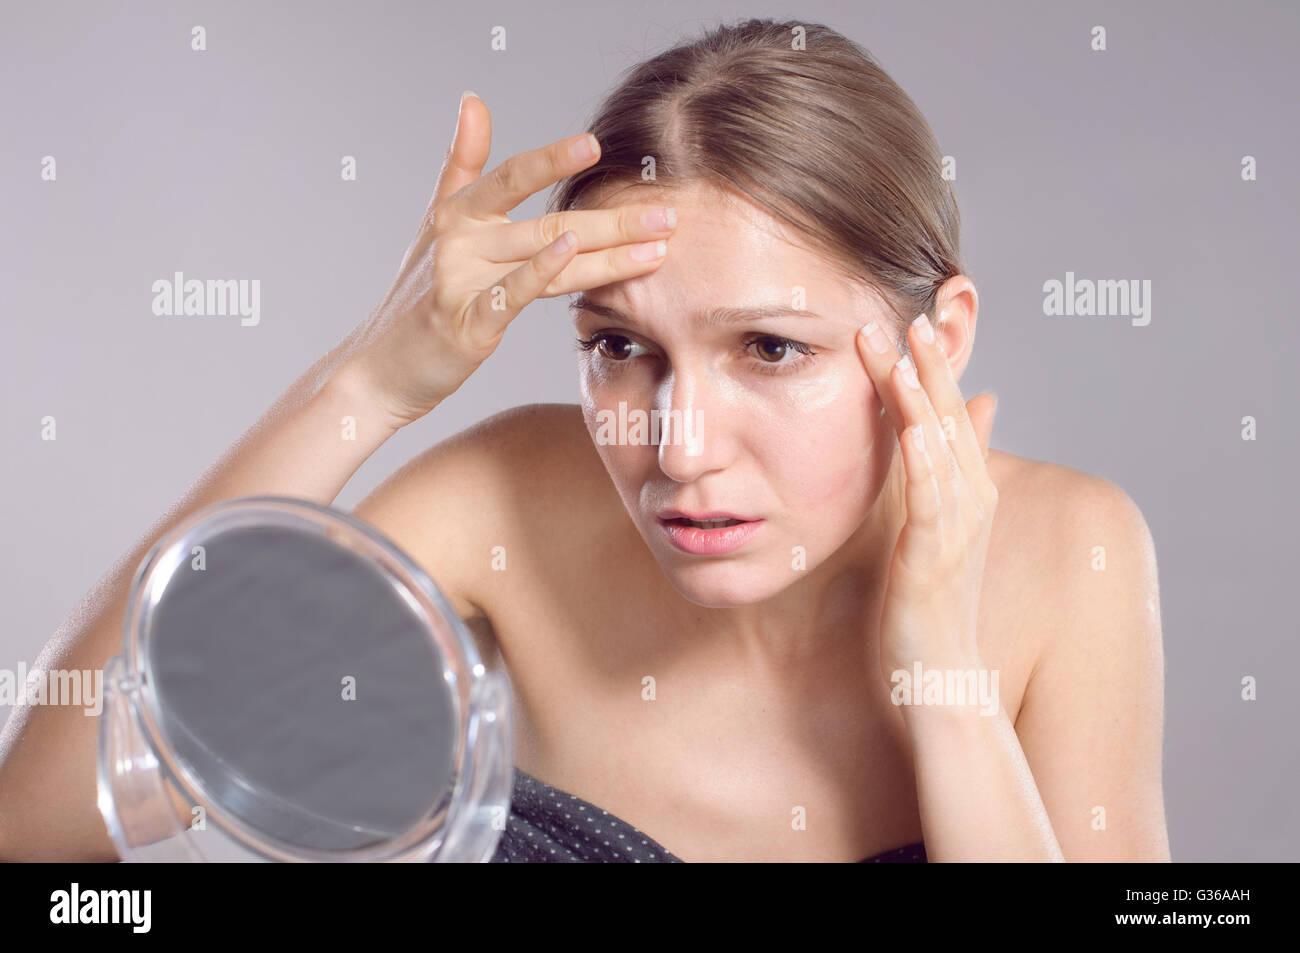 Woman checking her wrinkles on her forehead - Stock Image